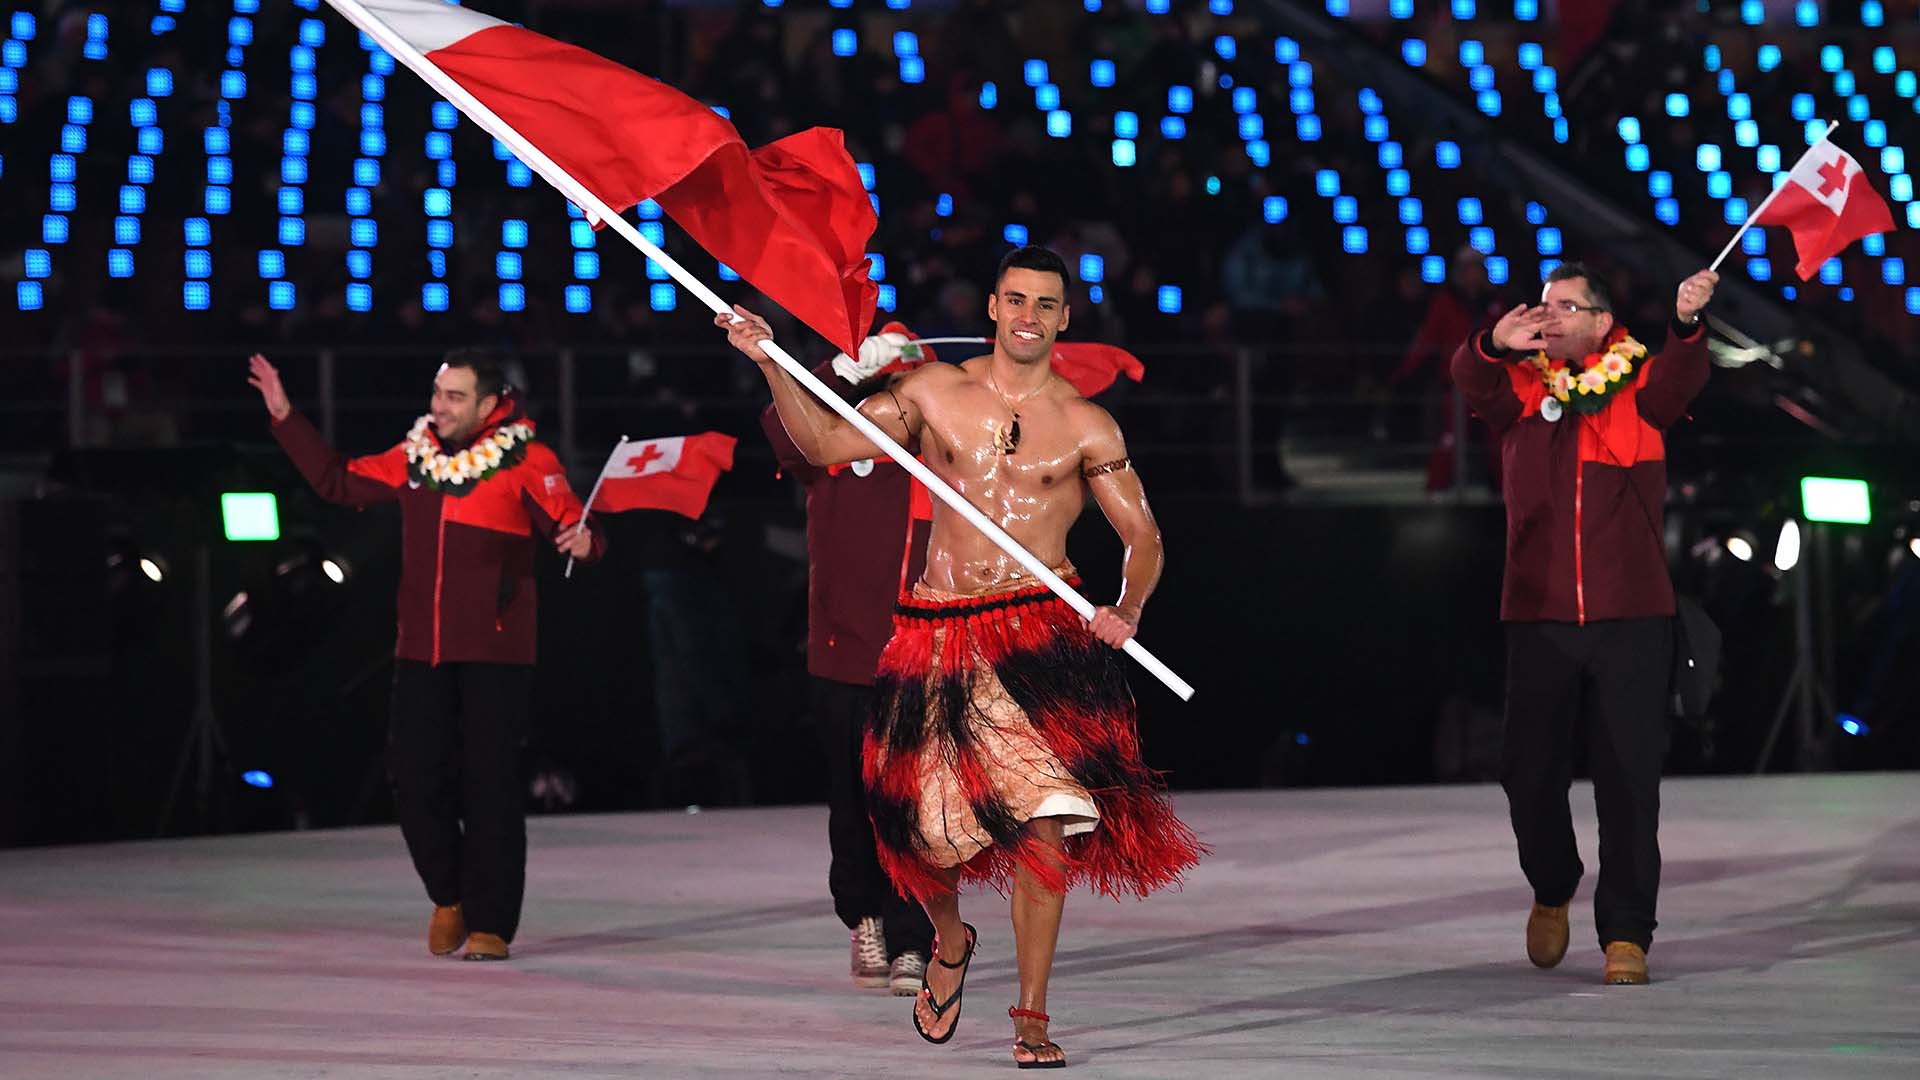 Big Screen Beckons For Tongas Toned Olympic Flagbearer